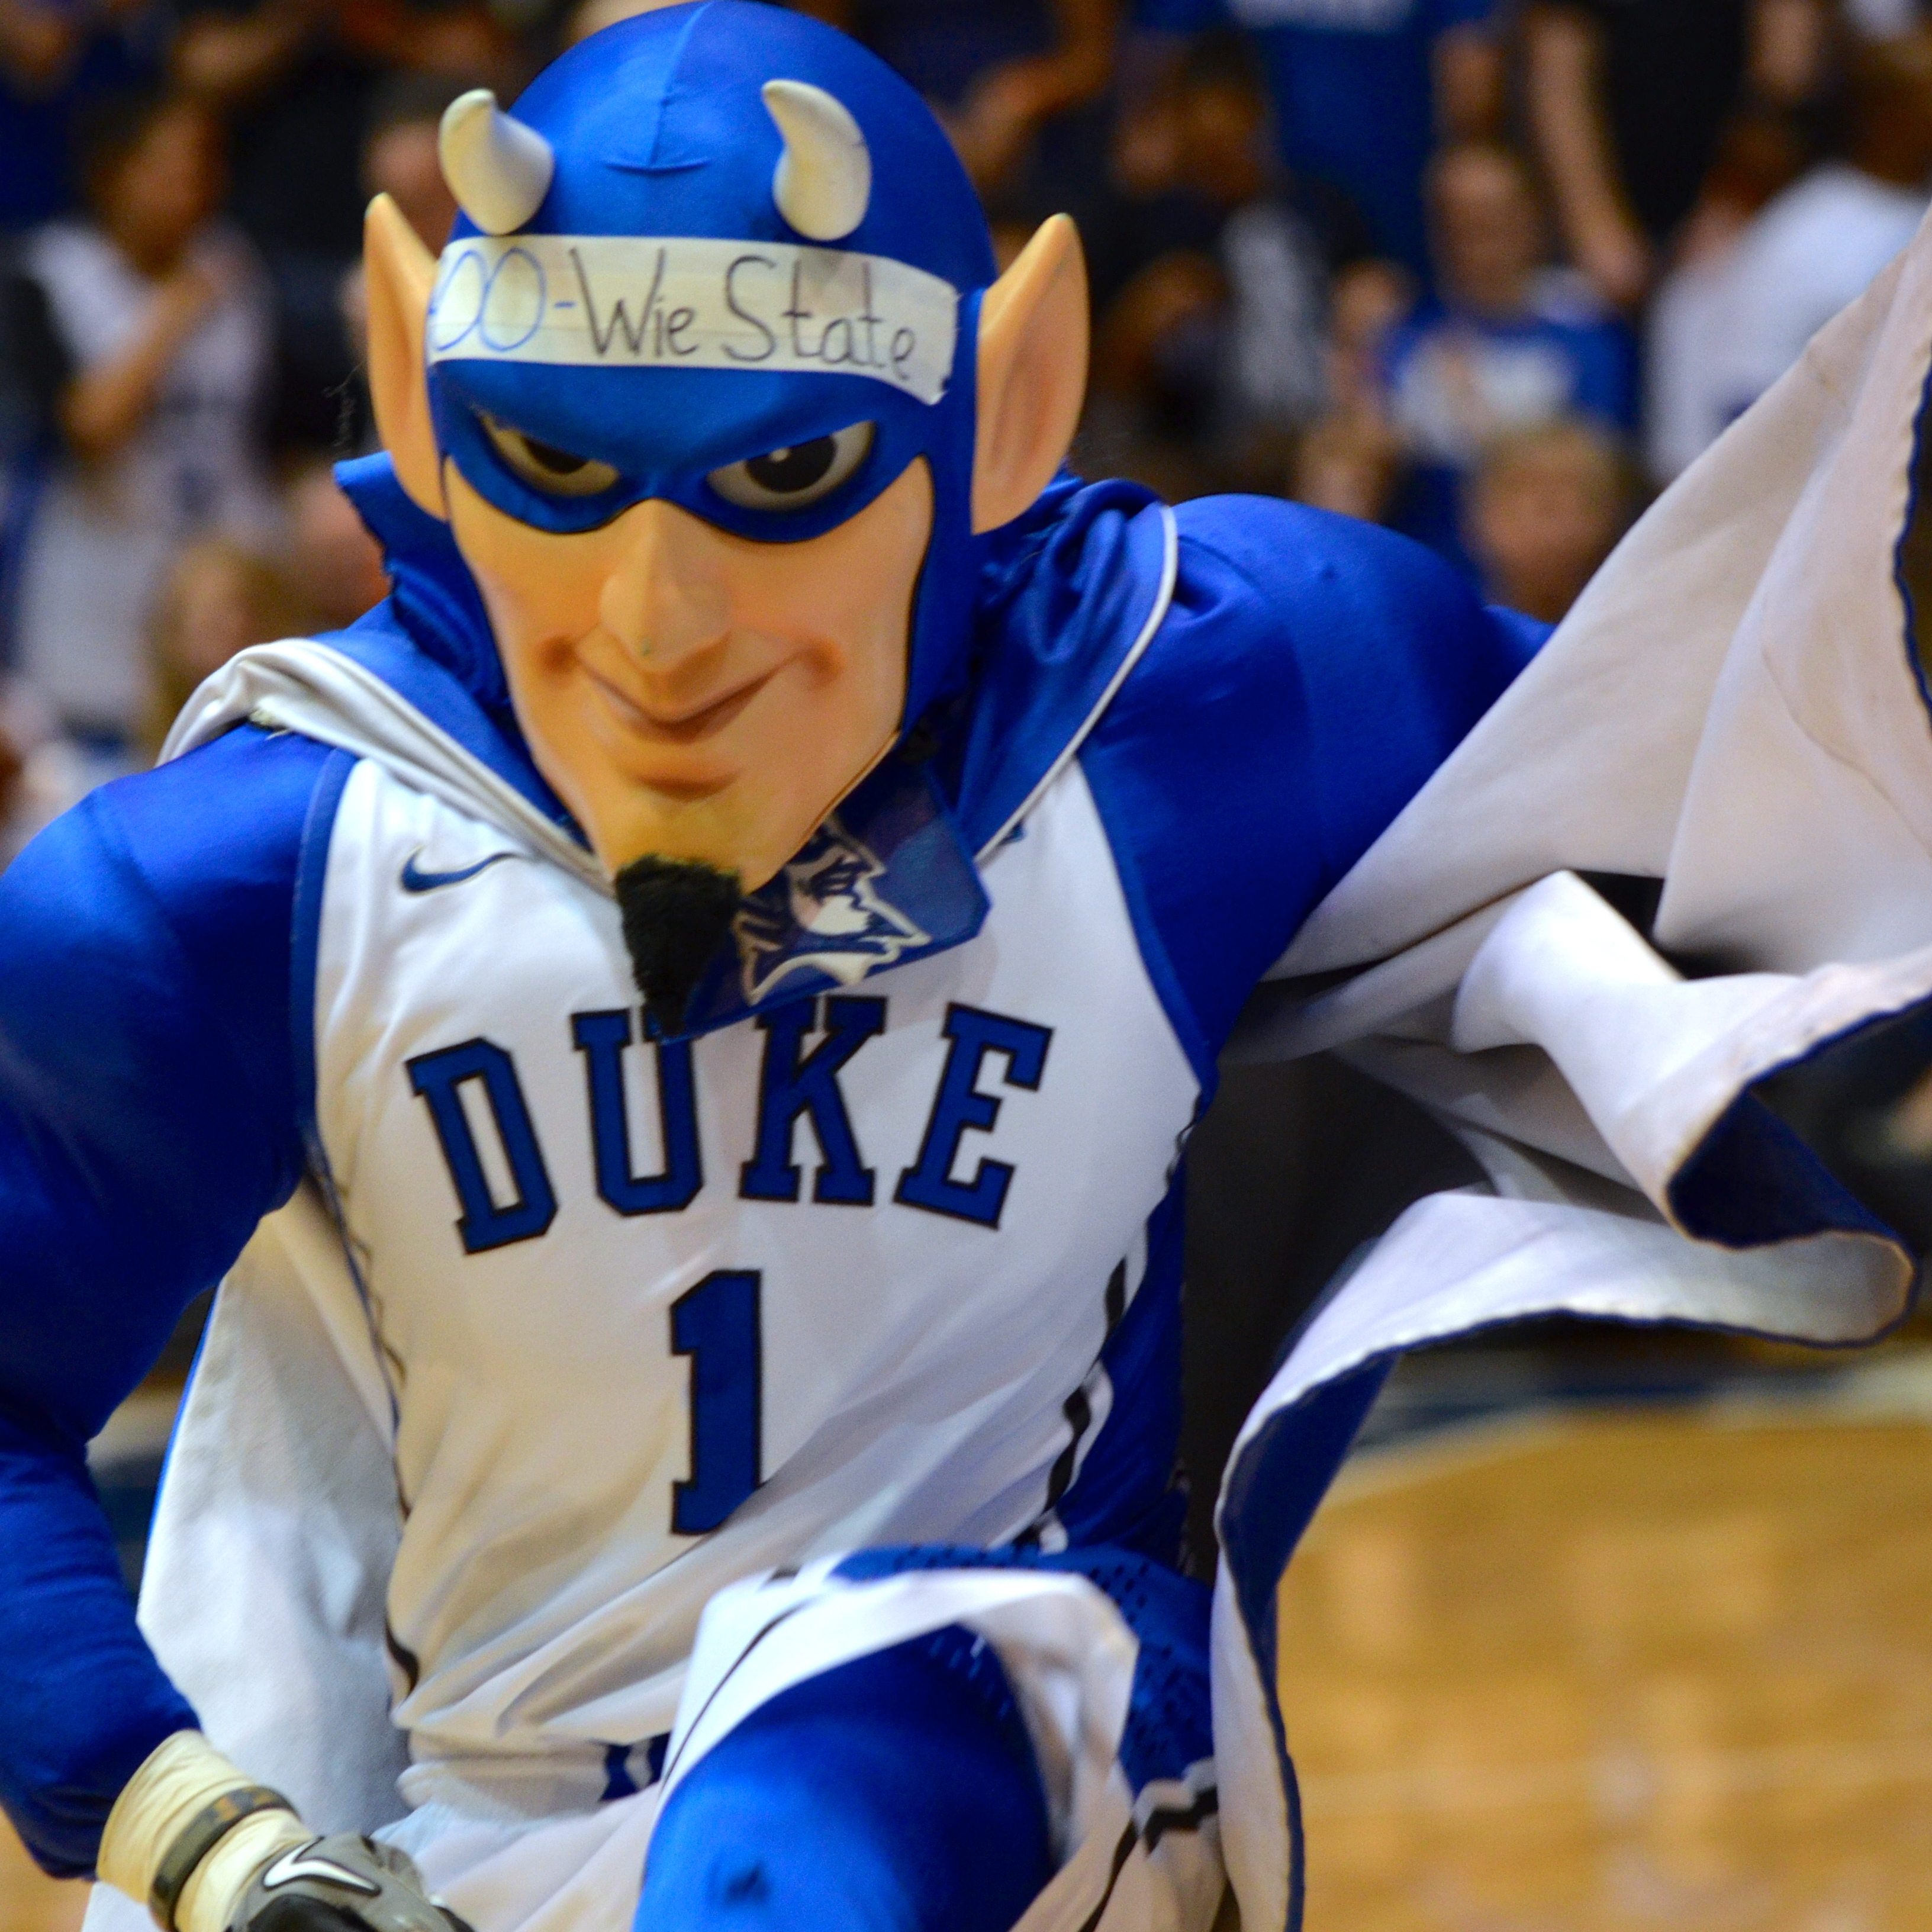 duke basketball - photo #27